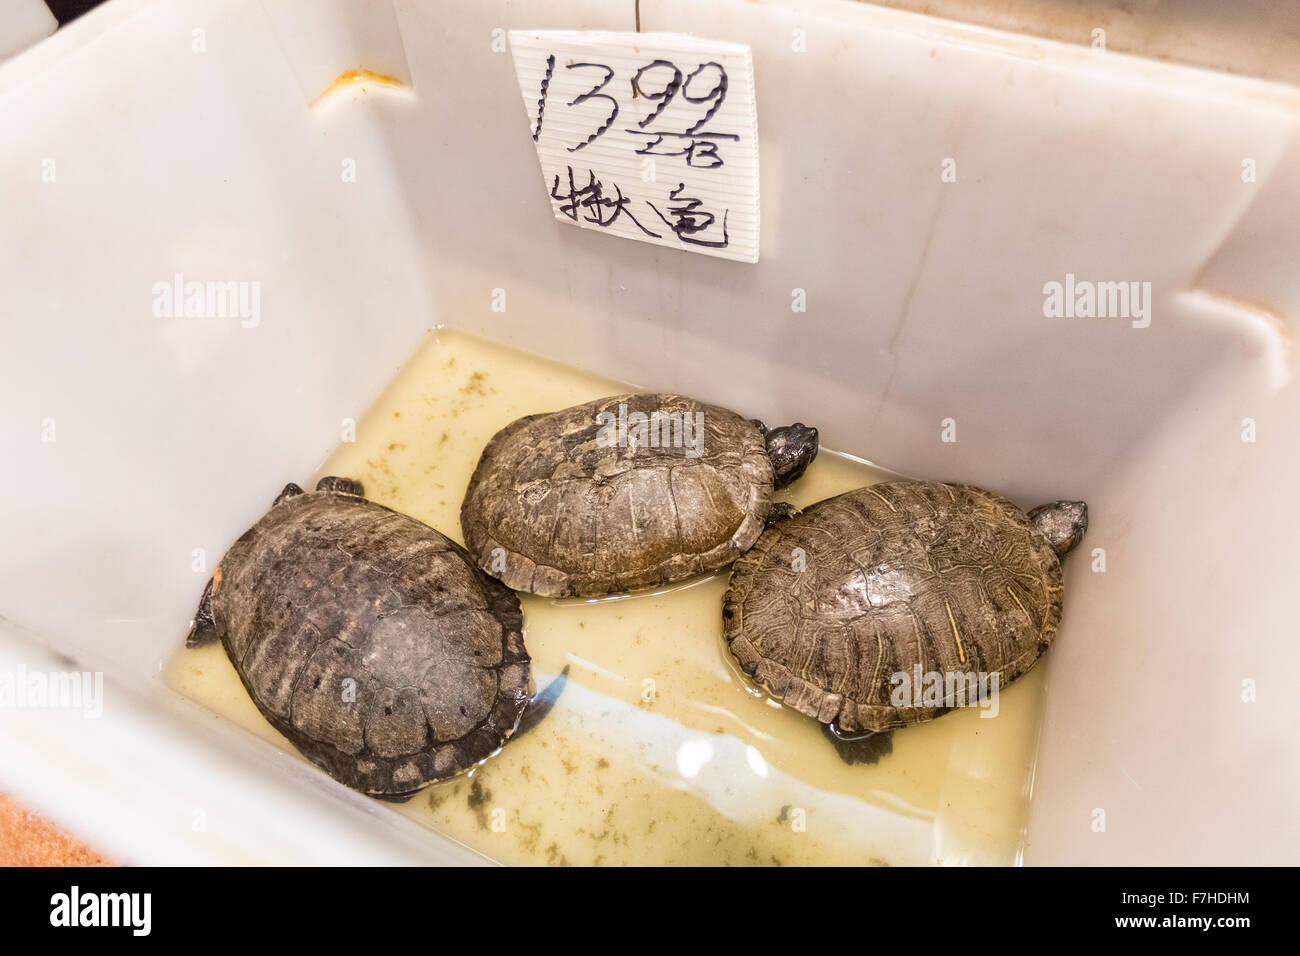 Turtles sold for food at Chinatown, San Francisco, California, United States of America, North America - Stock Image